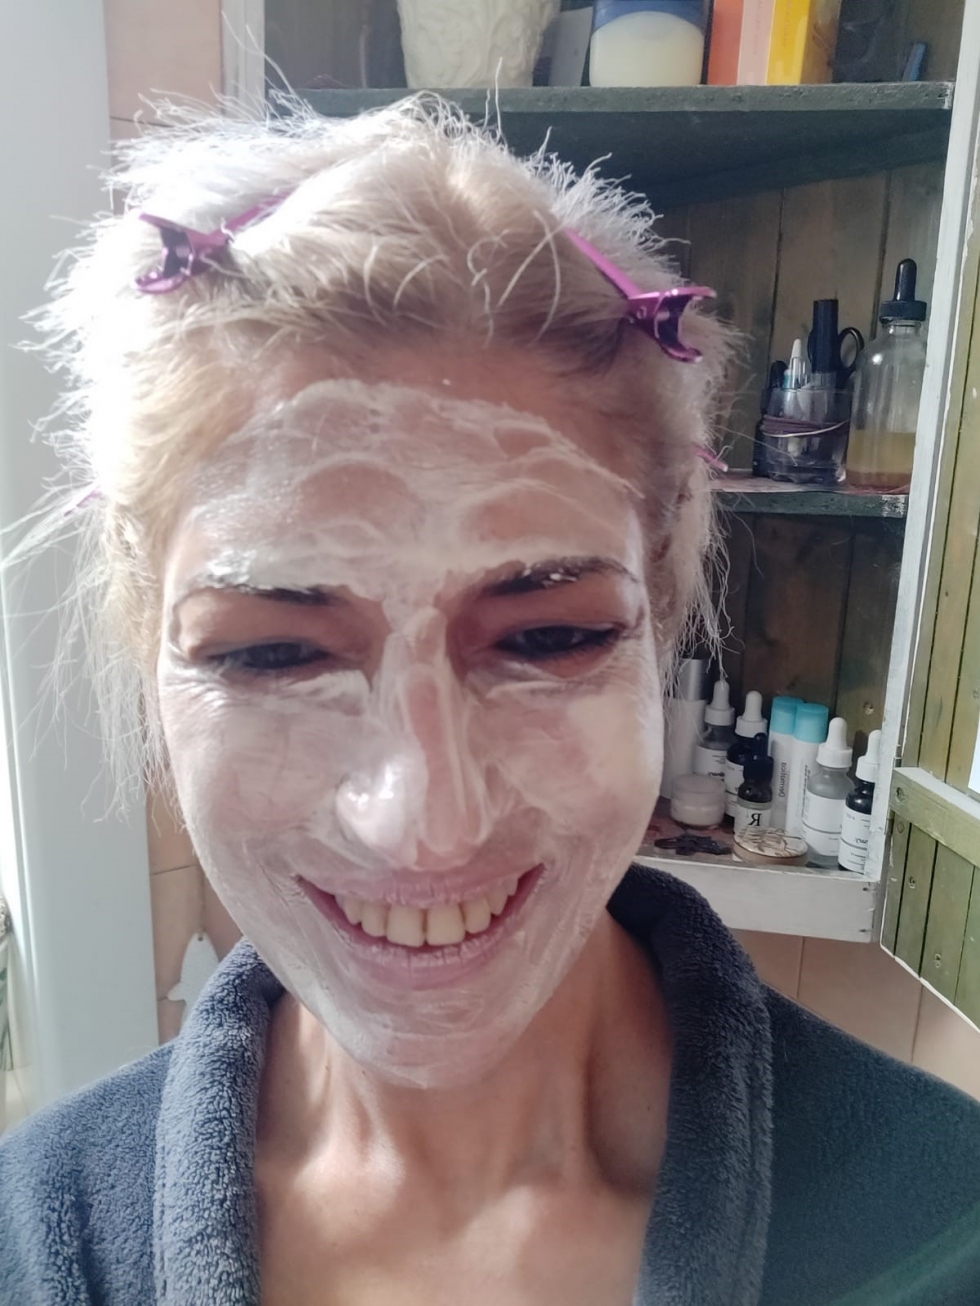 Sherin smiling with moisturiser all over her face